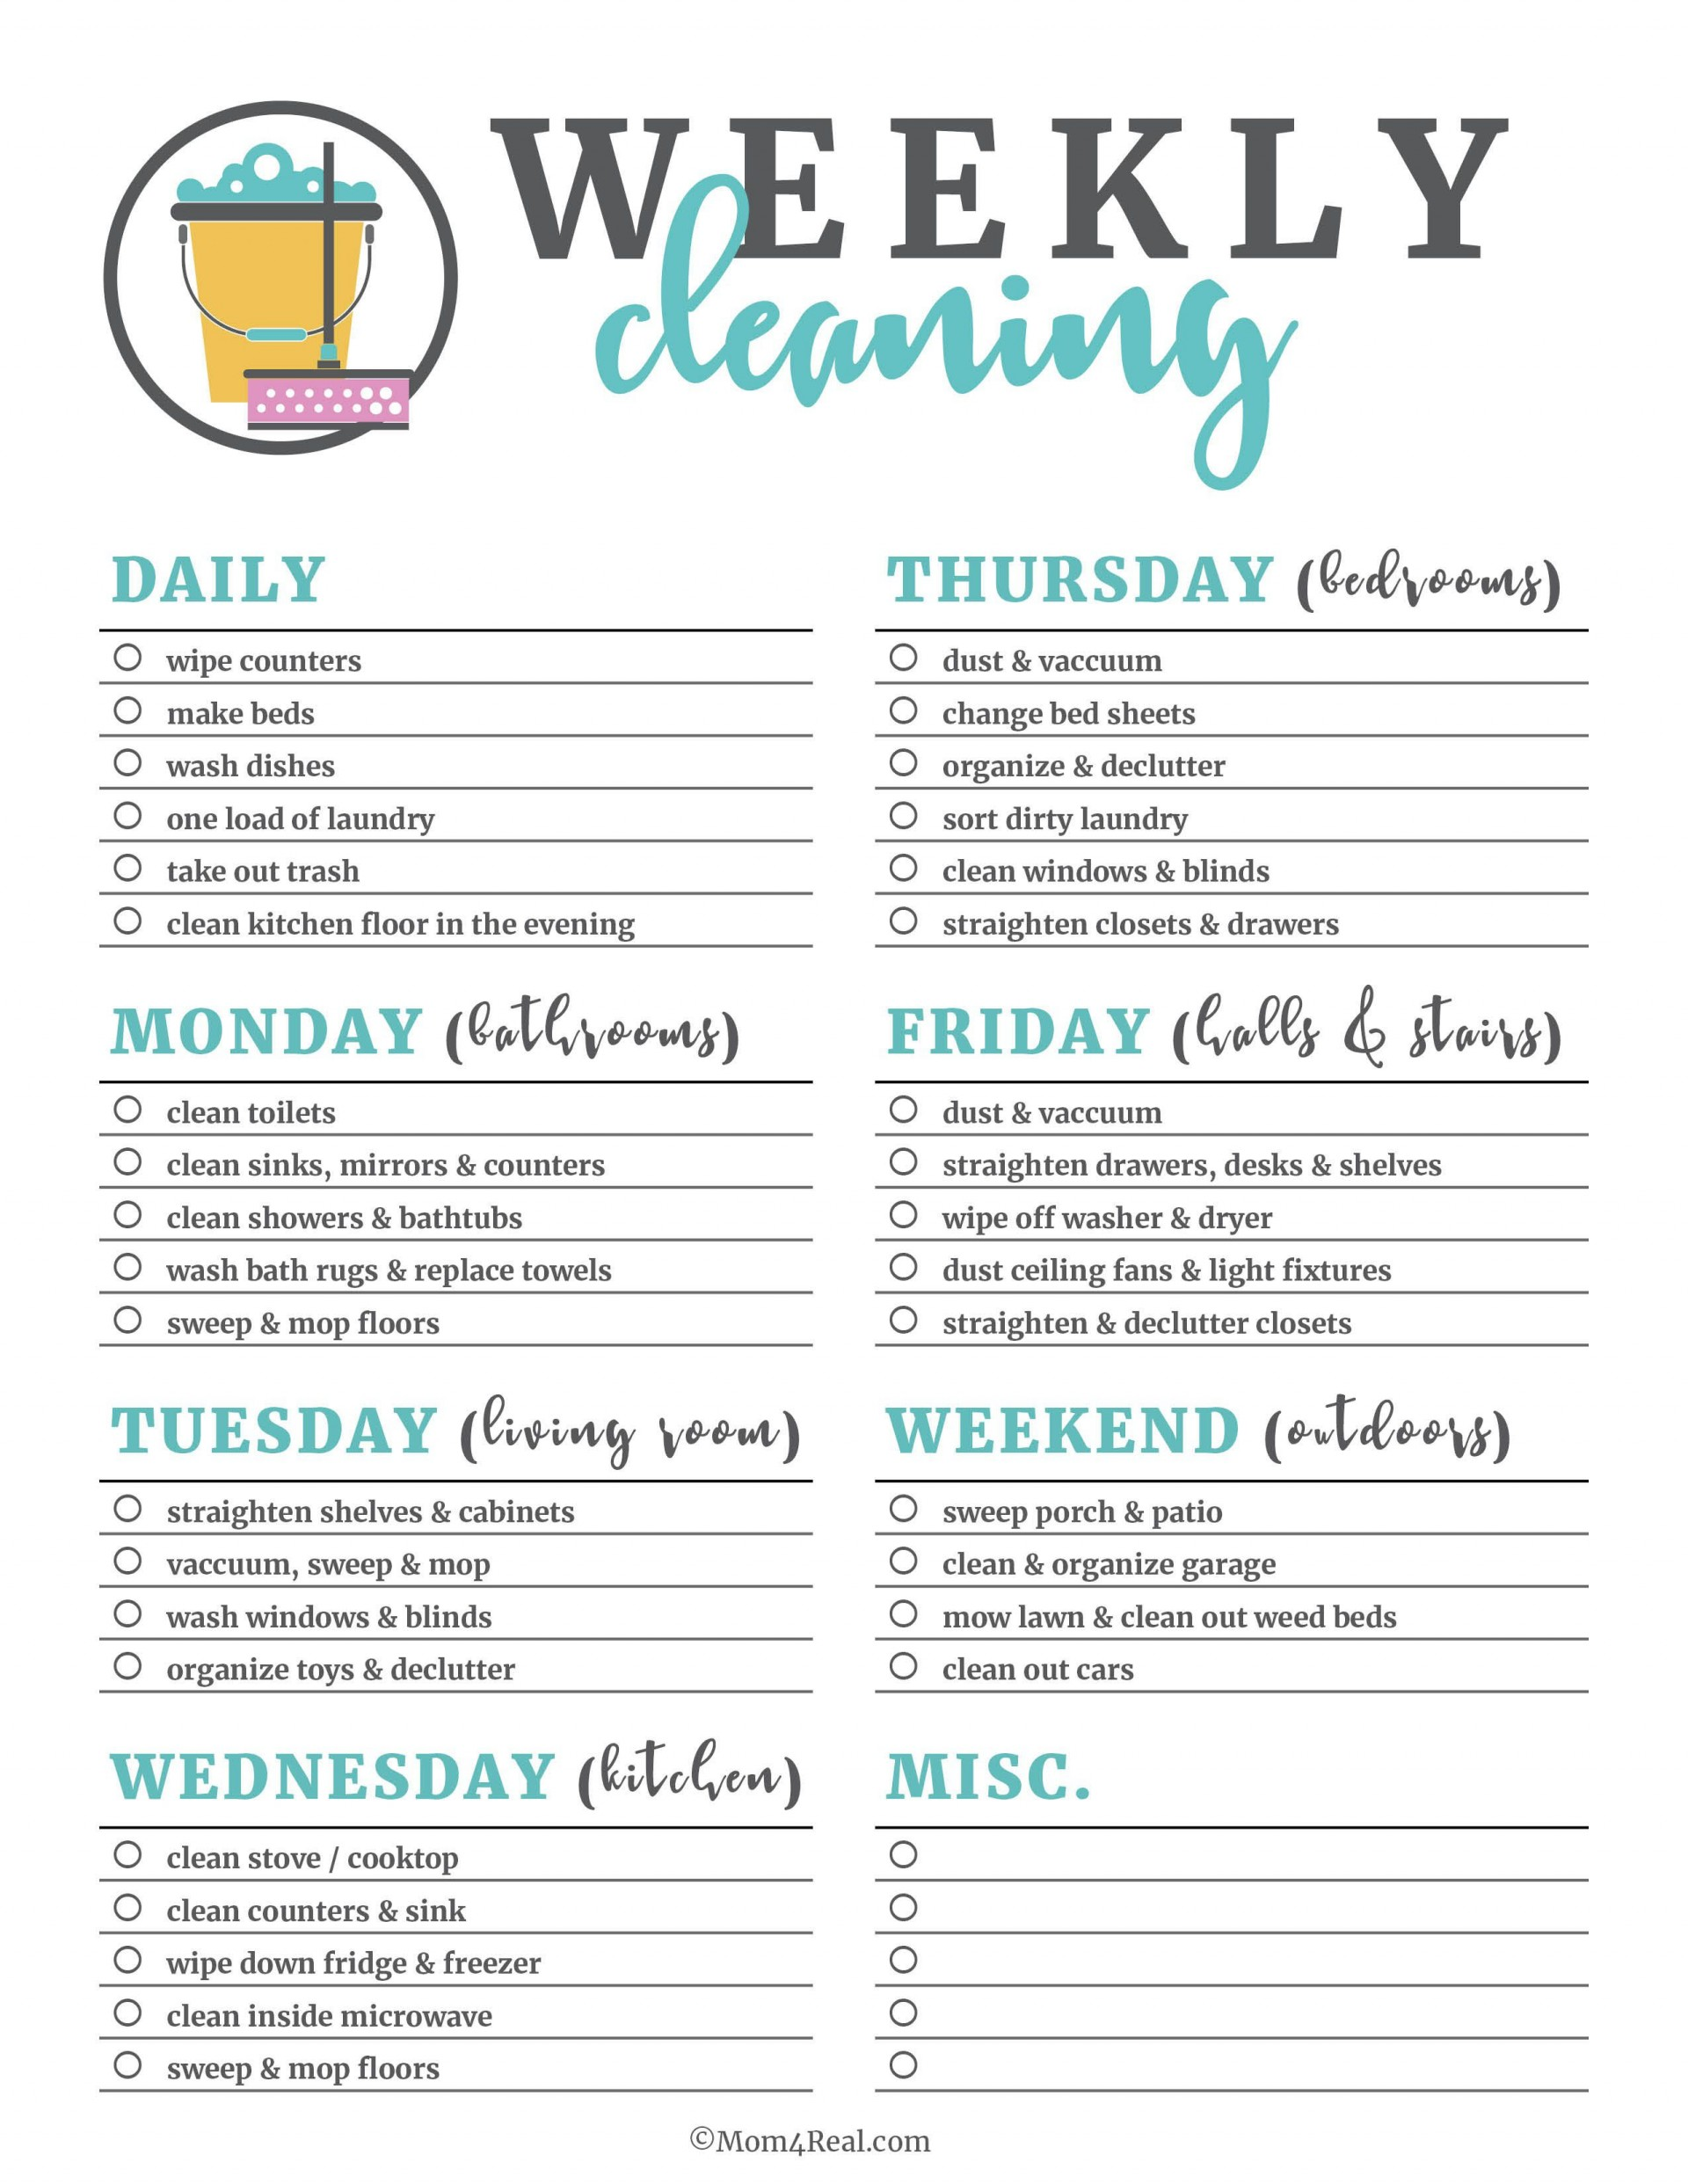 004 Breathtaking Weekly Cleaning Schedule Form Picture  Template Restaurant Excel1920